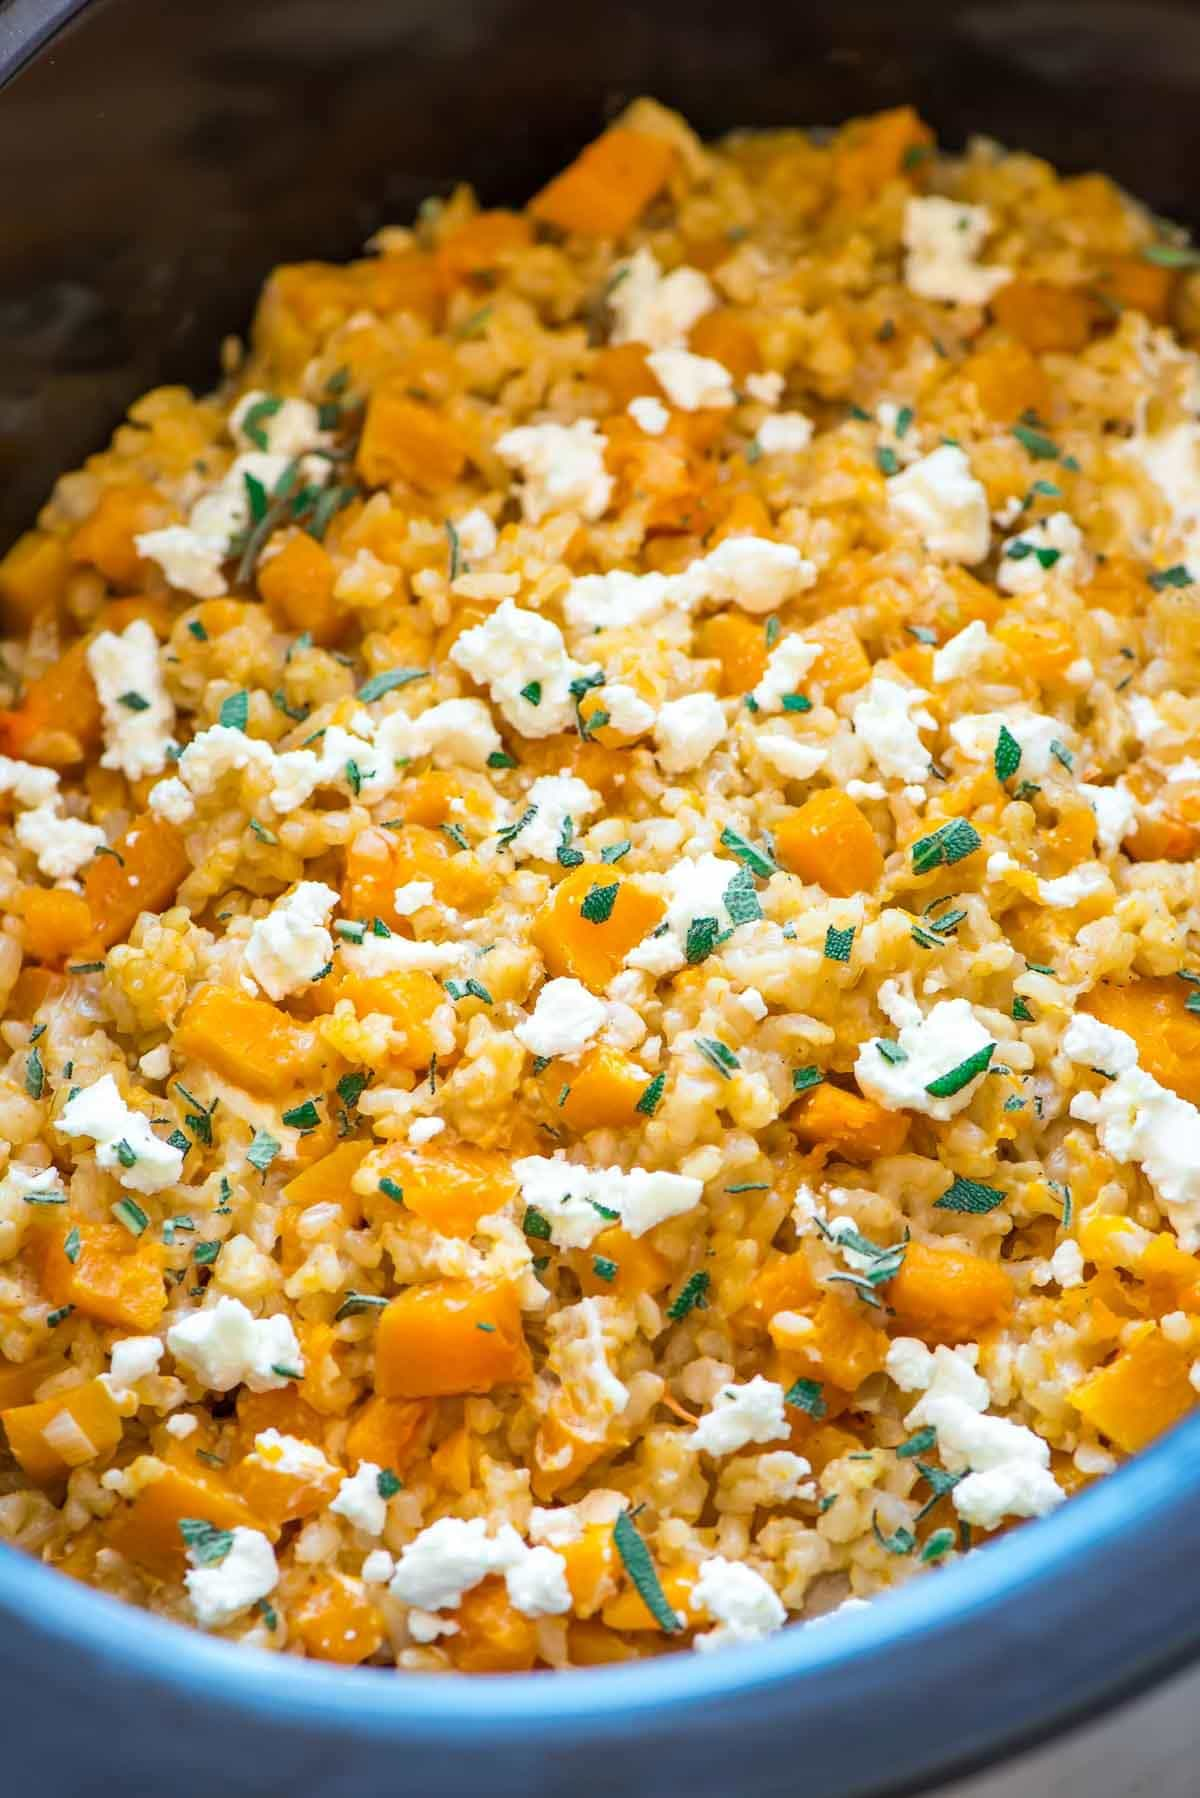 Slow Cooker Risotto with Butternut Squash, Goat Cheese and Sage. Creamy and delicious! Easy crock pot method with no stirring. Recipe uses brown rice, and you can add sausage, spinach, or anything else you like. Recipe at wellplated.com | @wellplated